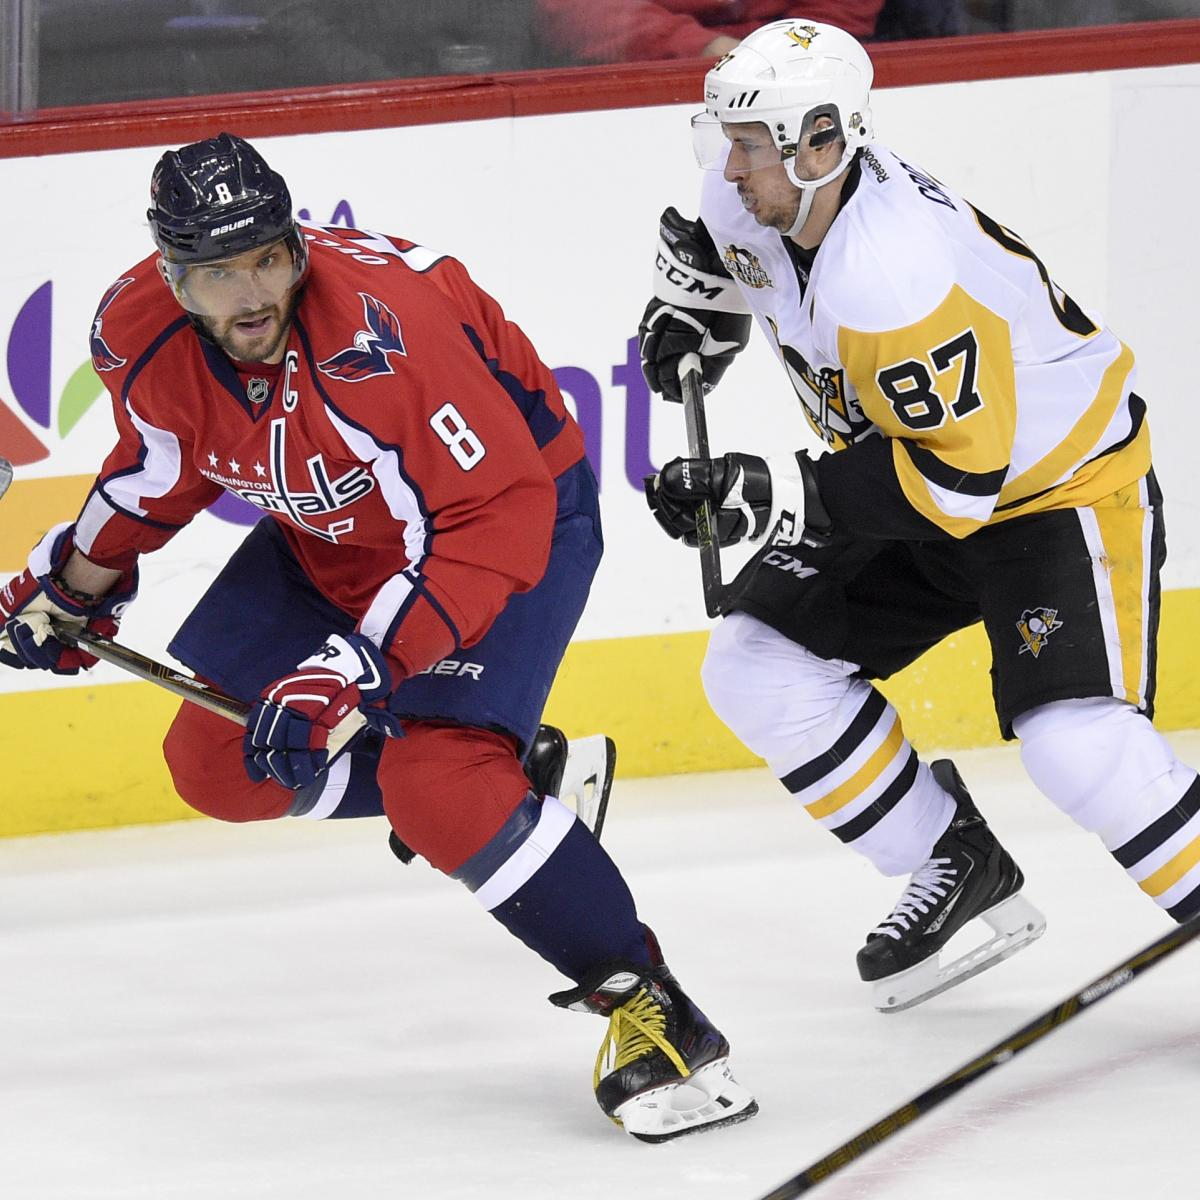 NHL Playoff Schedule 2017: Upcoming TV Coverage, Live